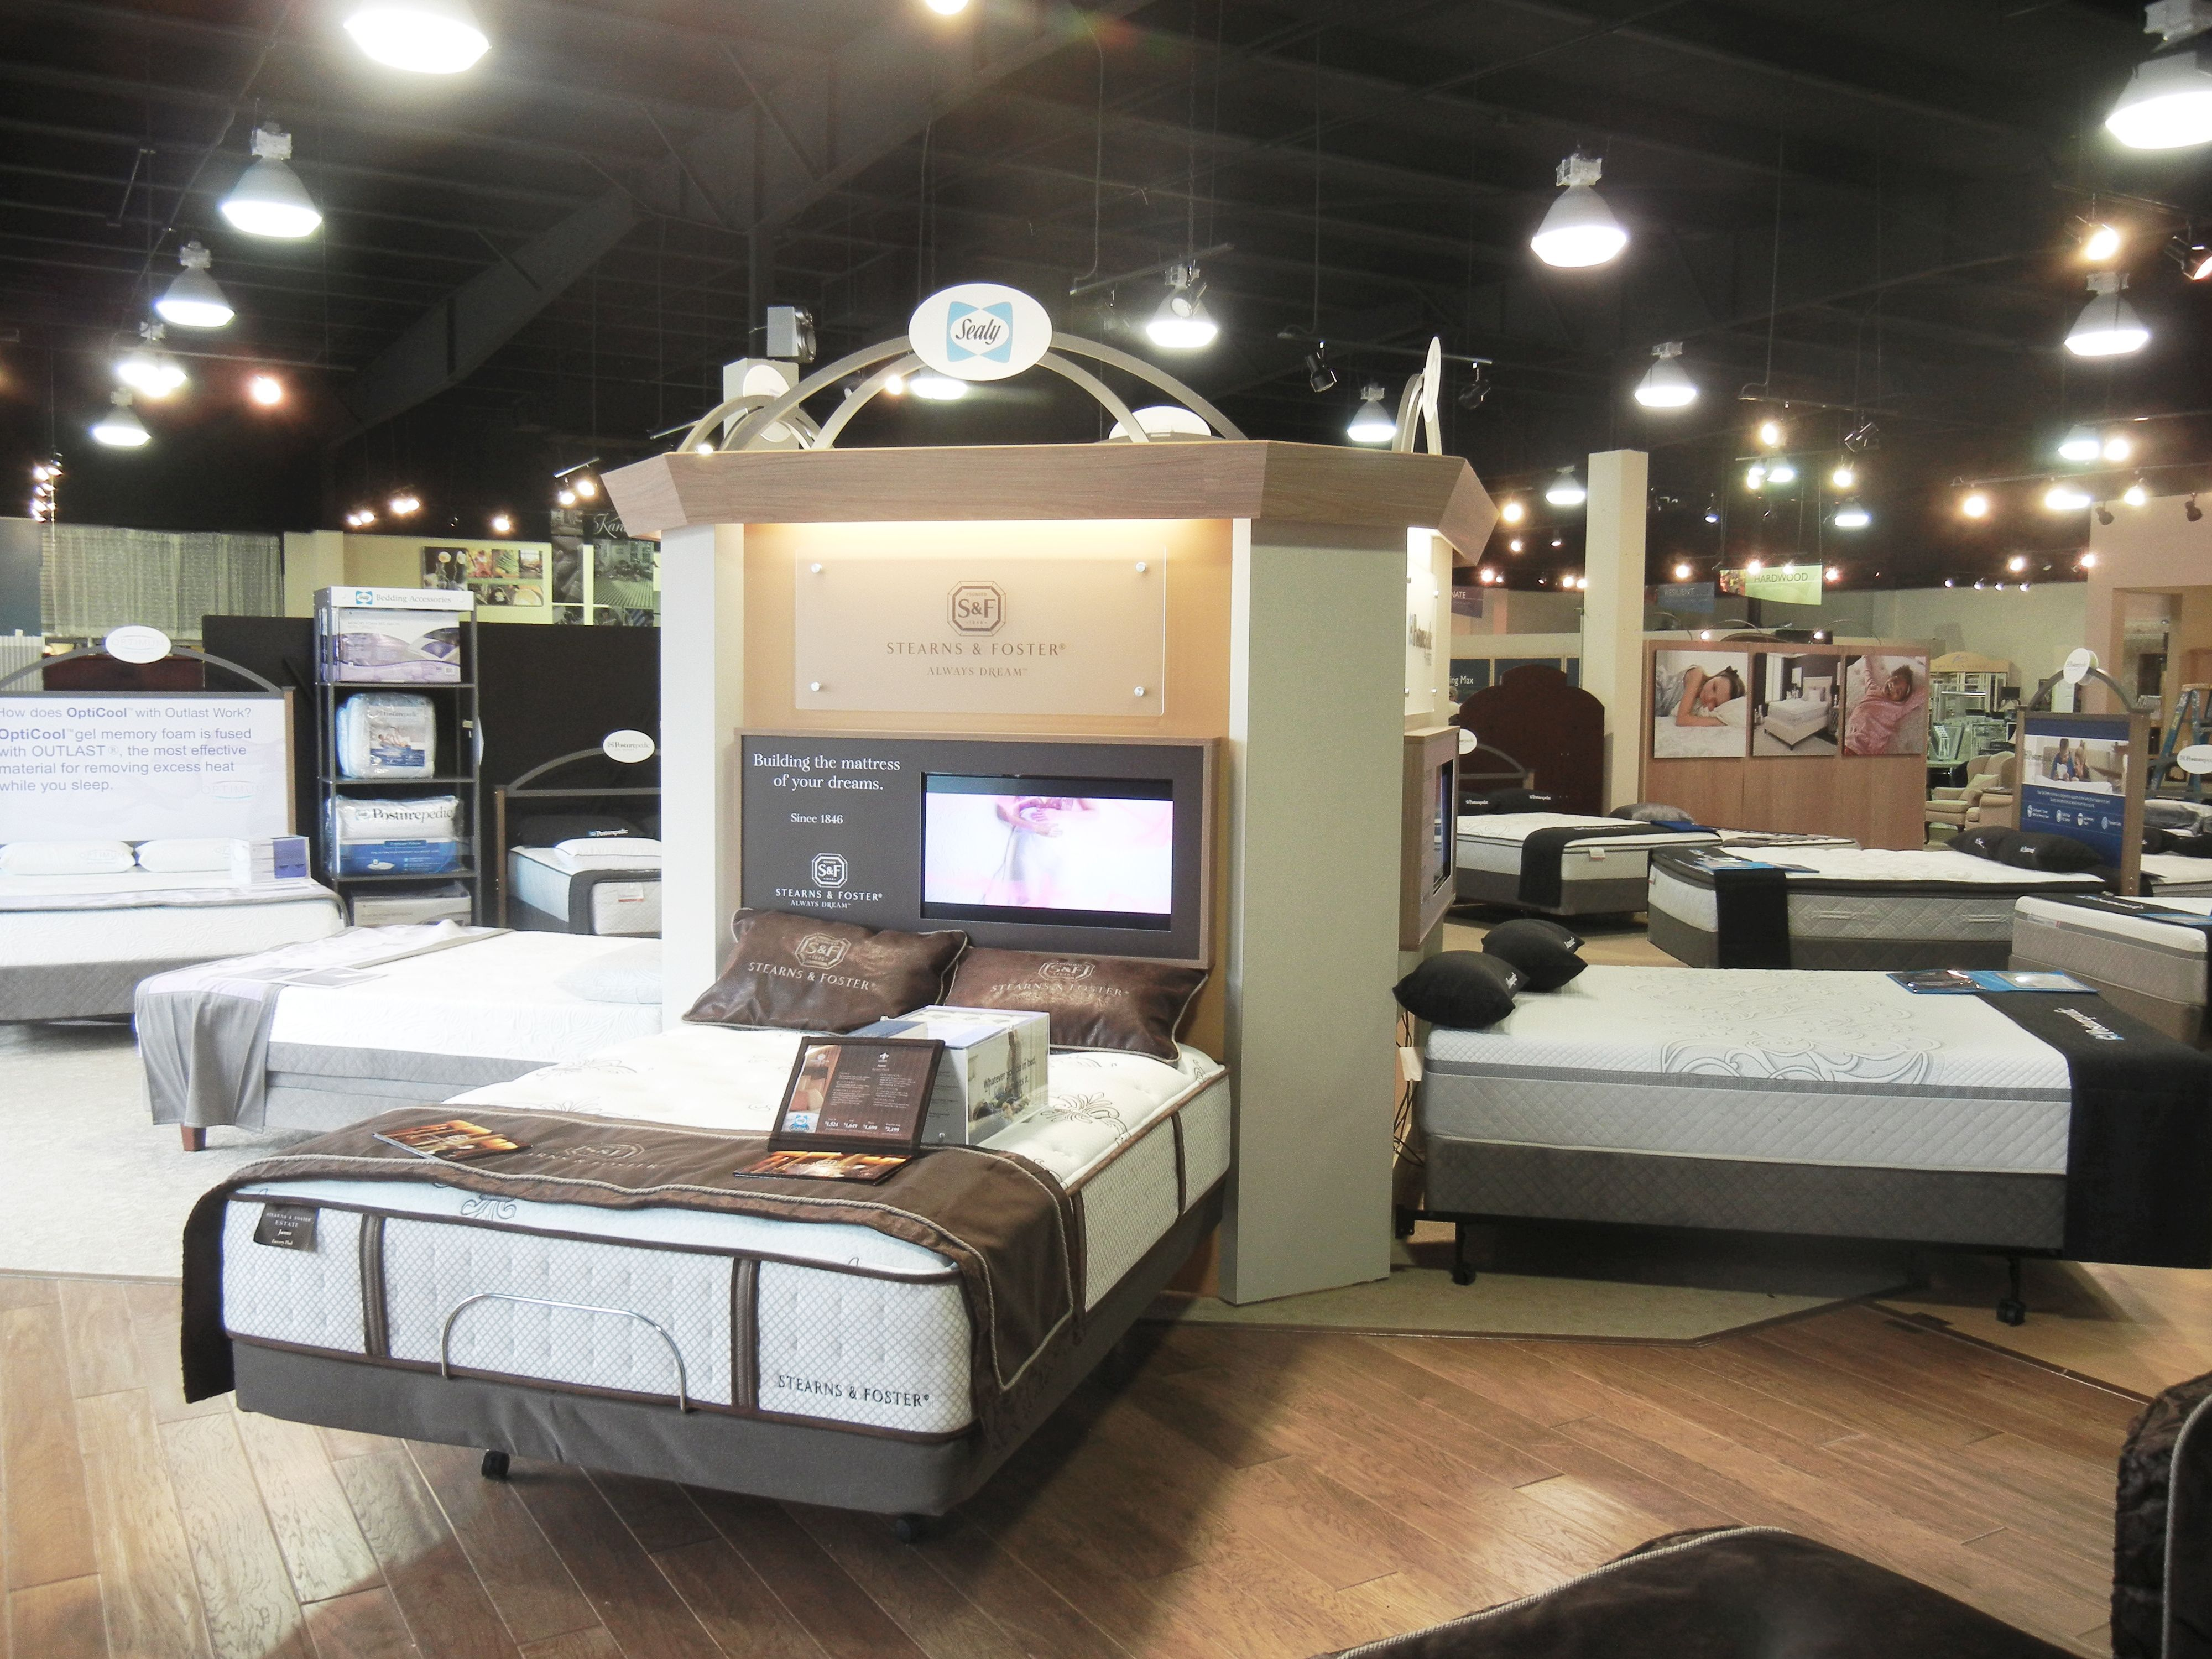 Just A Glimpse Of Our Sealy Mattress Gallery Sealy Posturepedic Optimum And Stearns Foster All Available At Our Showroom H Loja De Colchoes Colchao Moveis